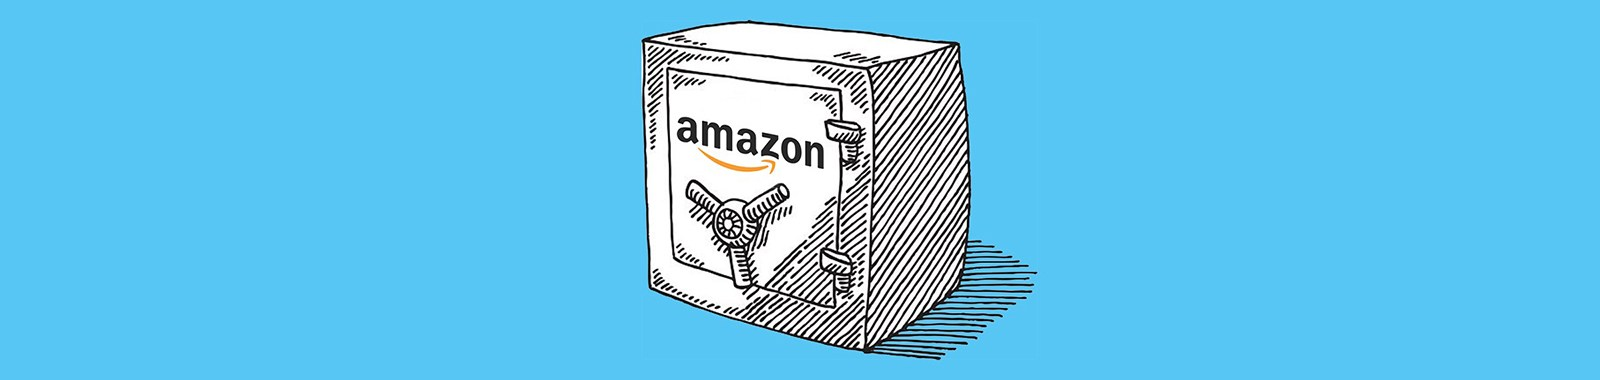 amazon-safe-eye